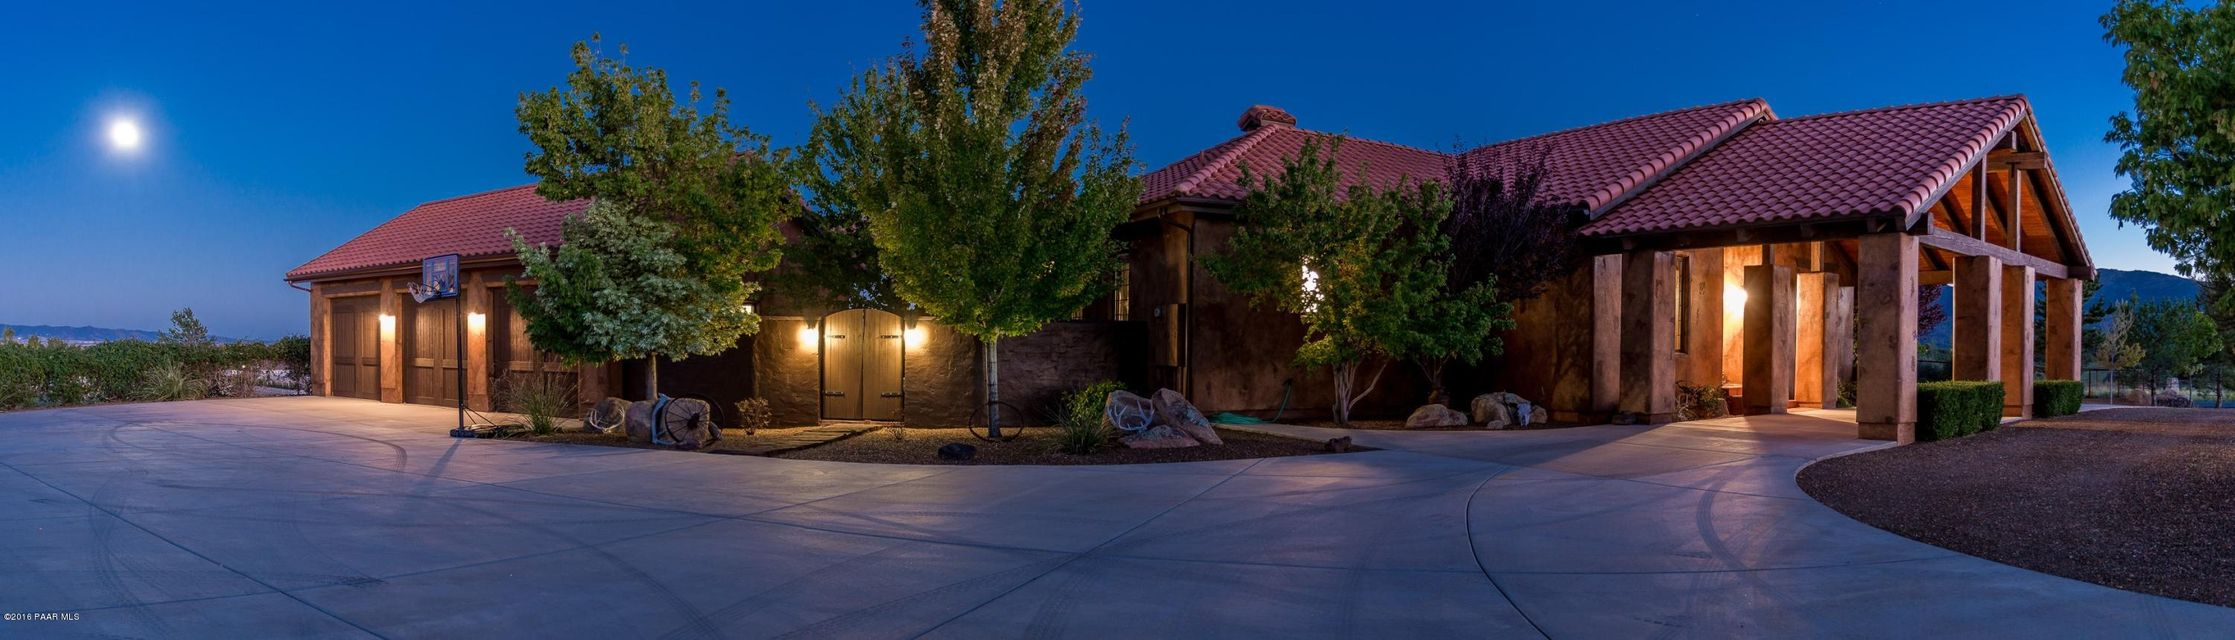 MLS 998670 11225 Williamson Valley Ranch Road Building 11225, Prescott, AZ Prescott AZ Williamson Valley Ranch